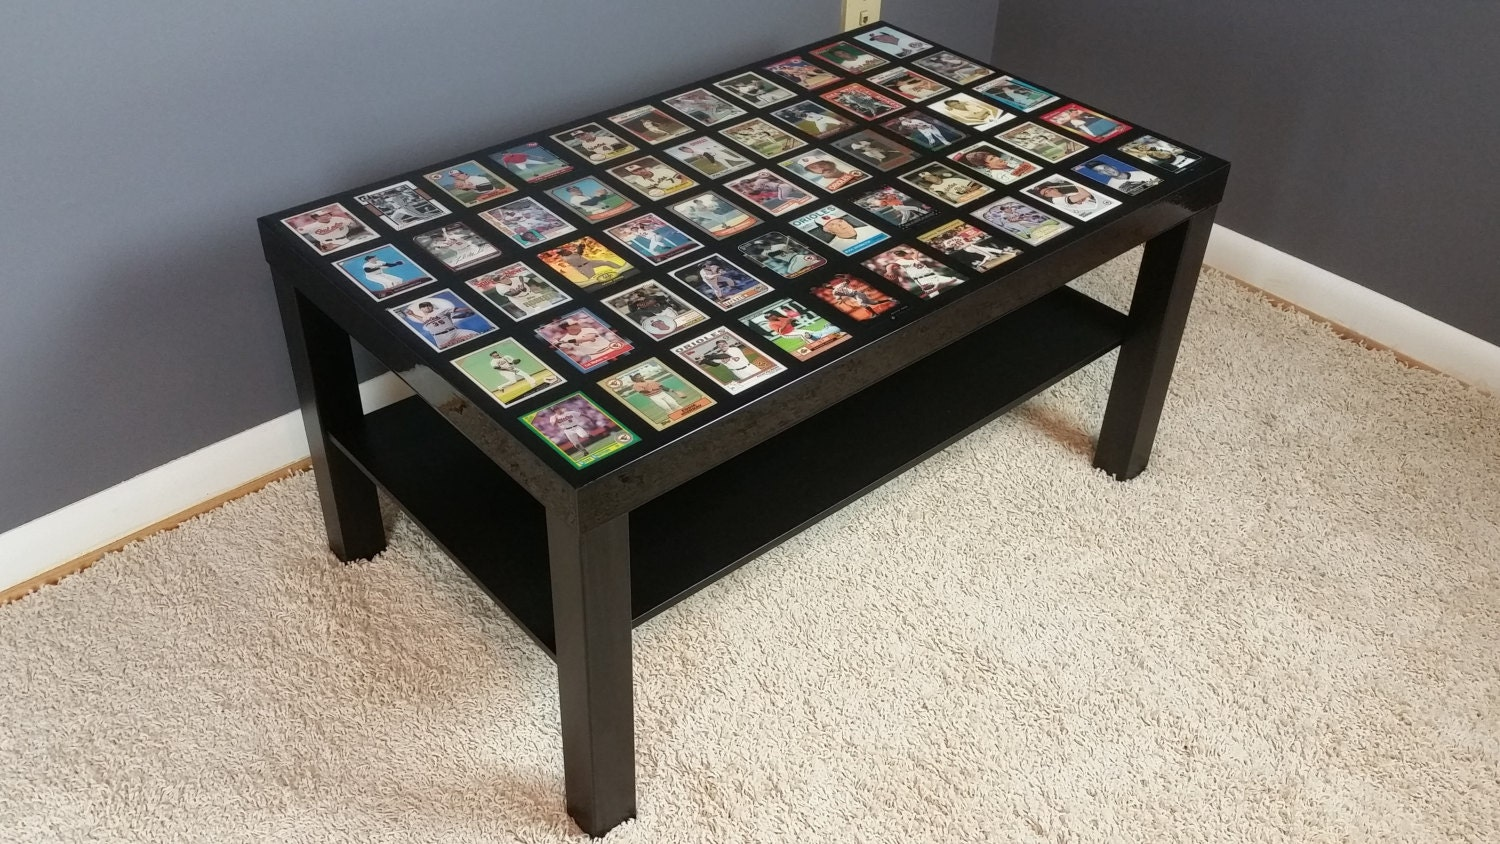 Mlb baseball team coffee table with high gloss epoxy finish zoom geotapseo Image collections